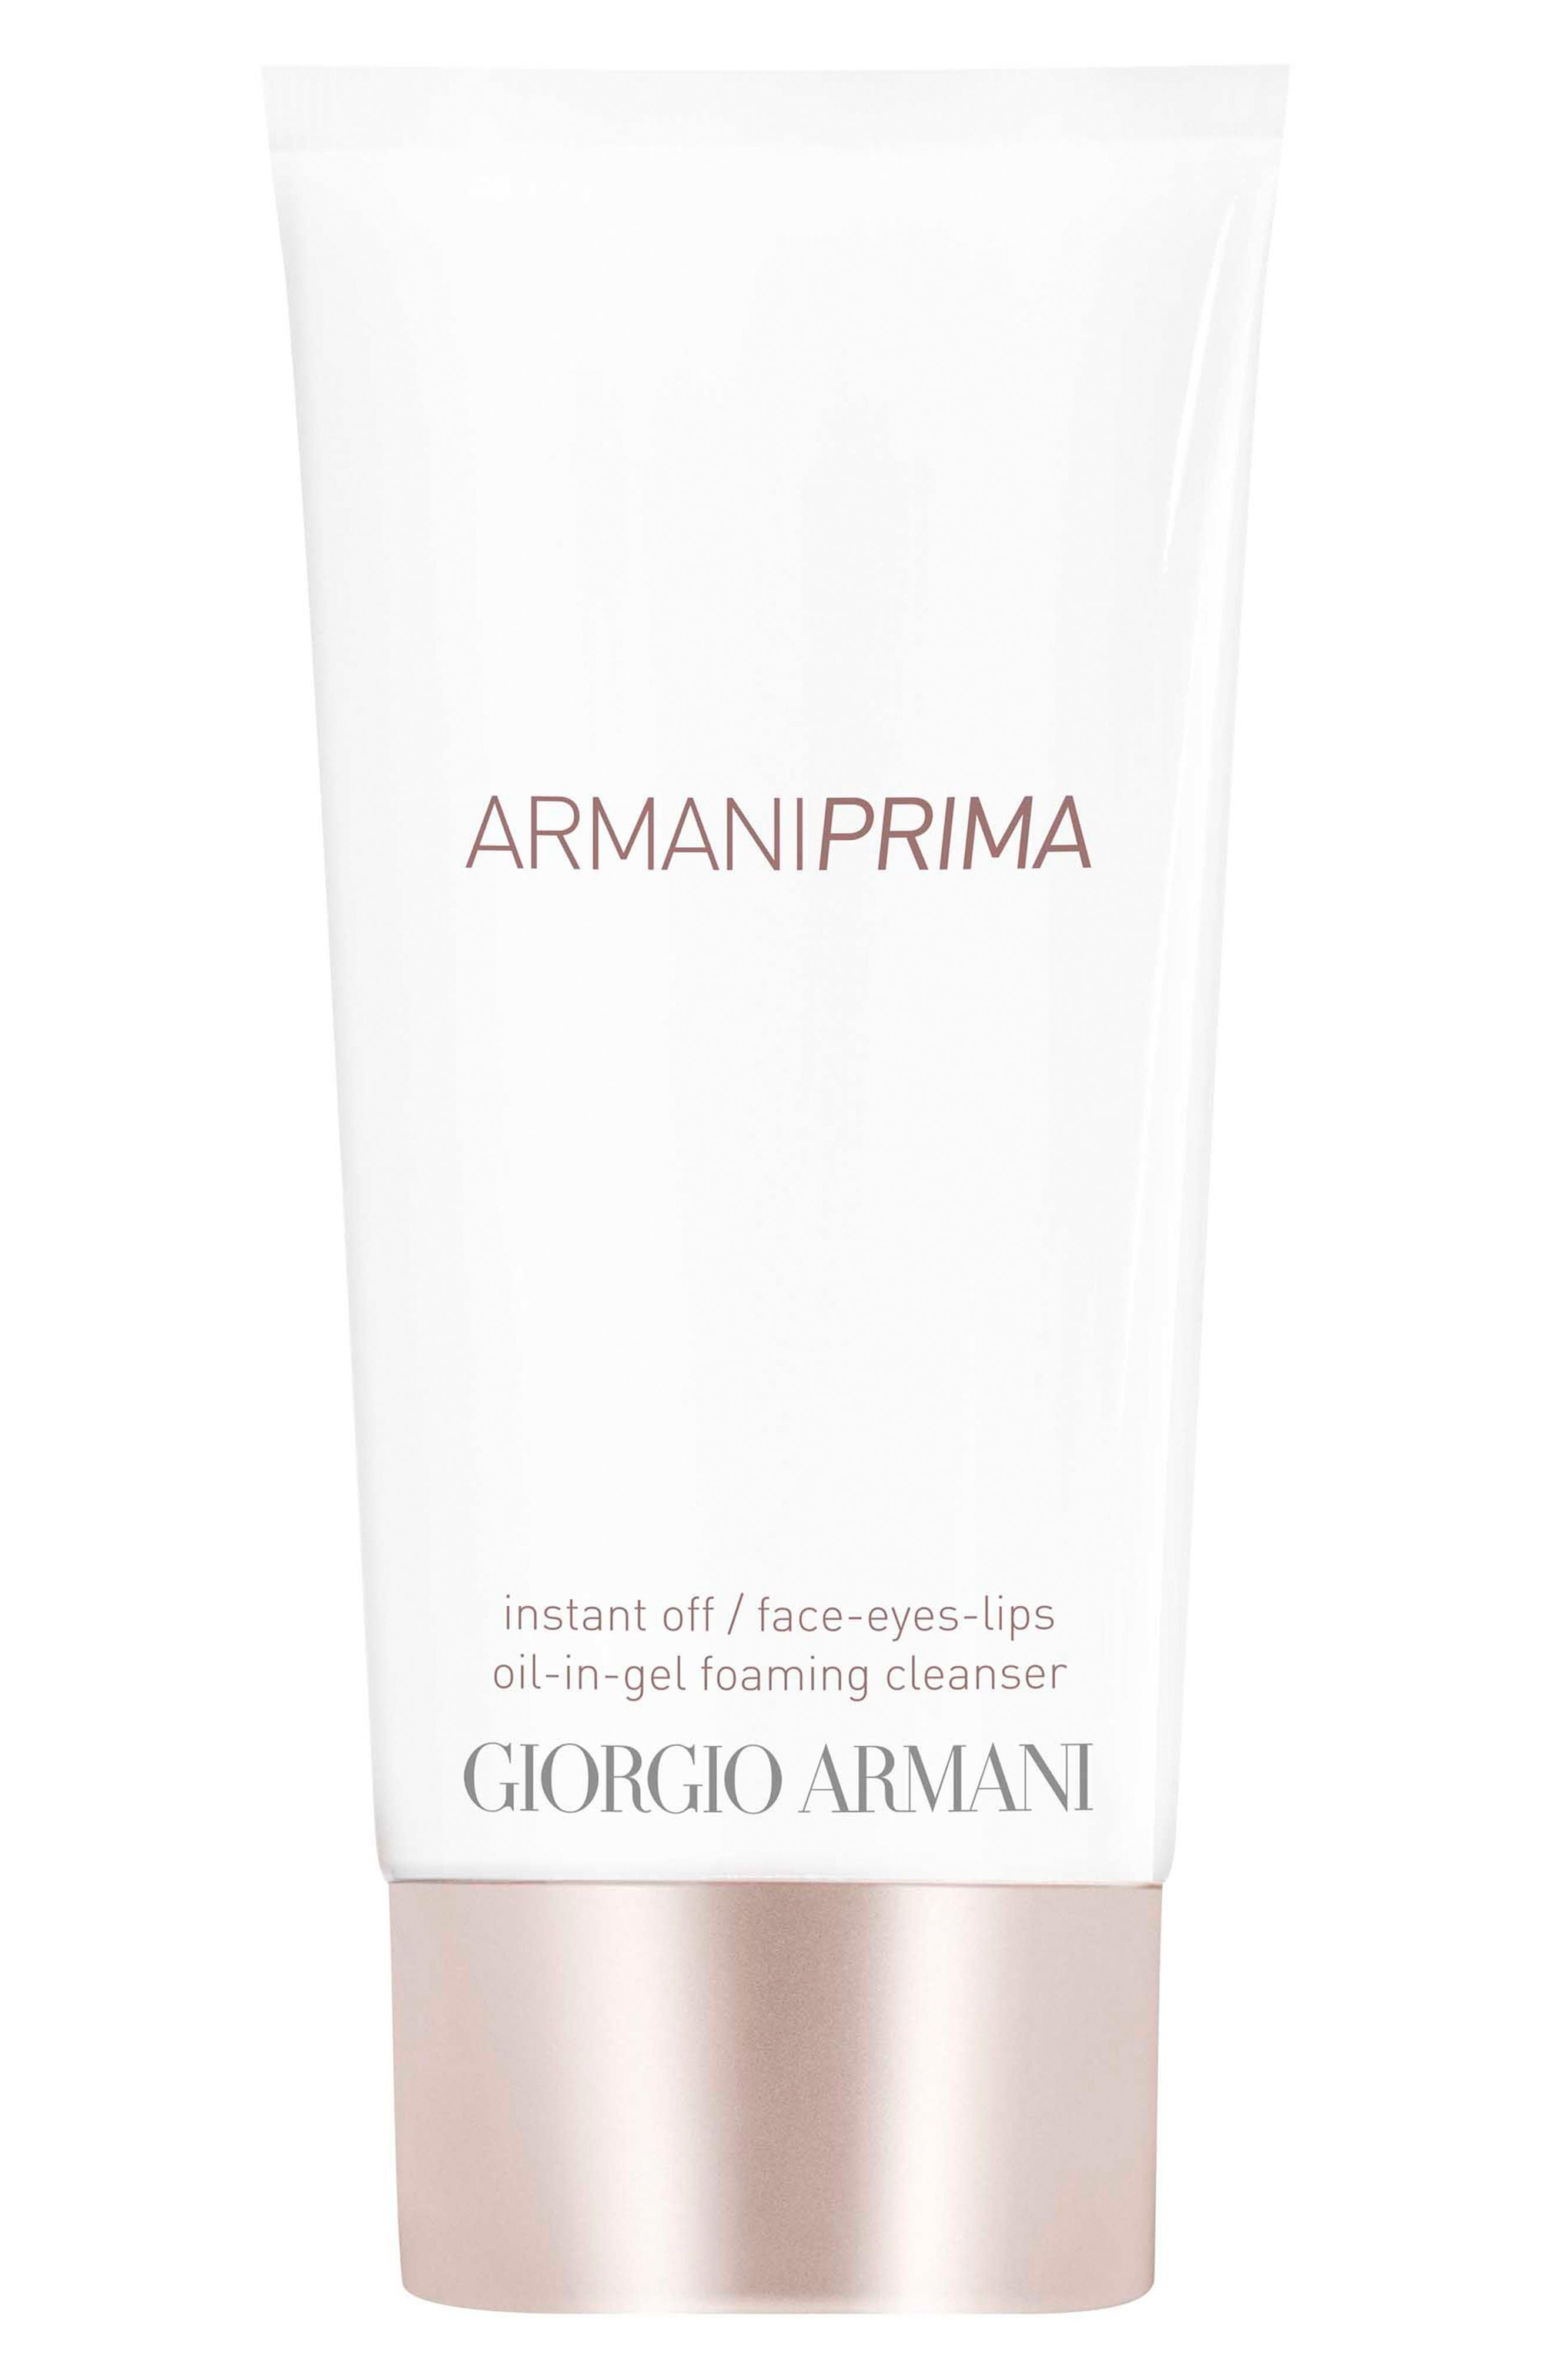 Giorgio Armani Prima Instant Off Face, Eyes & Lips Oil-in-Gel Foaming Cleanser